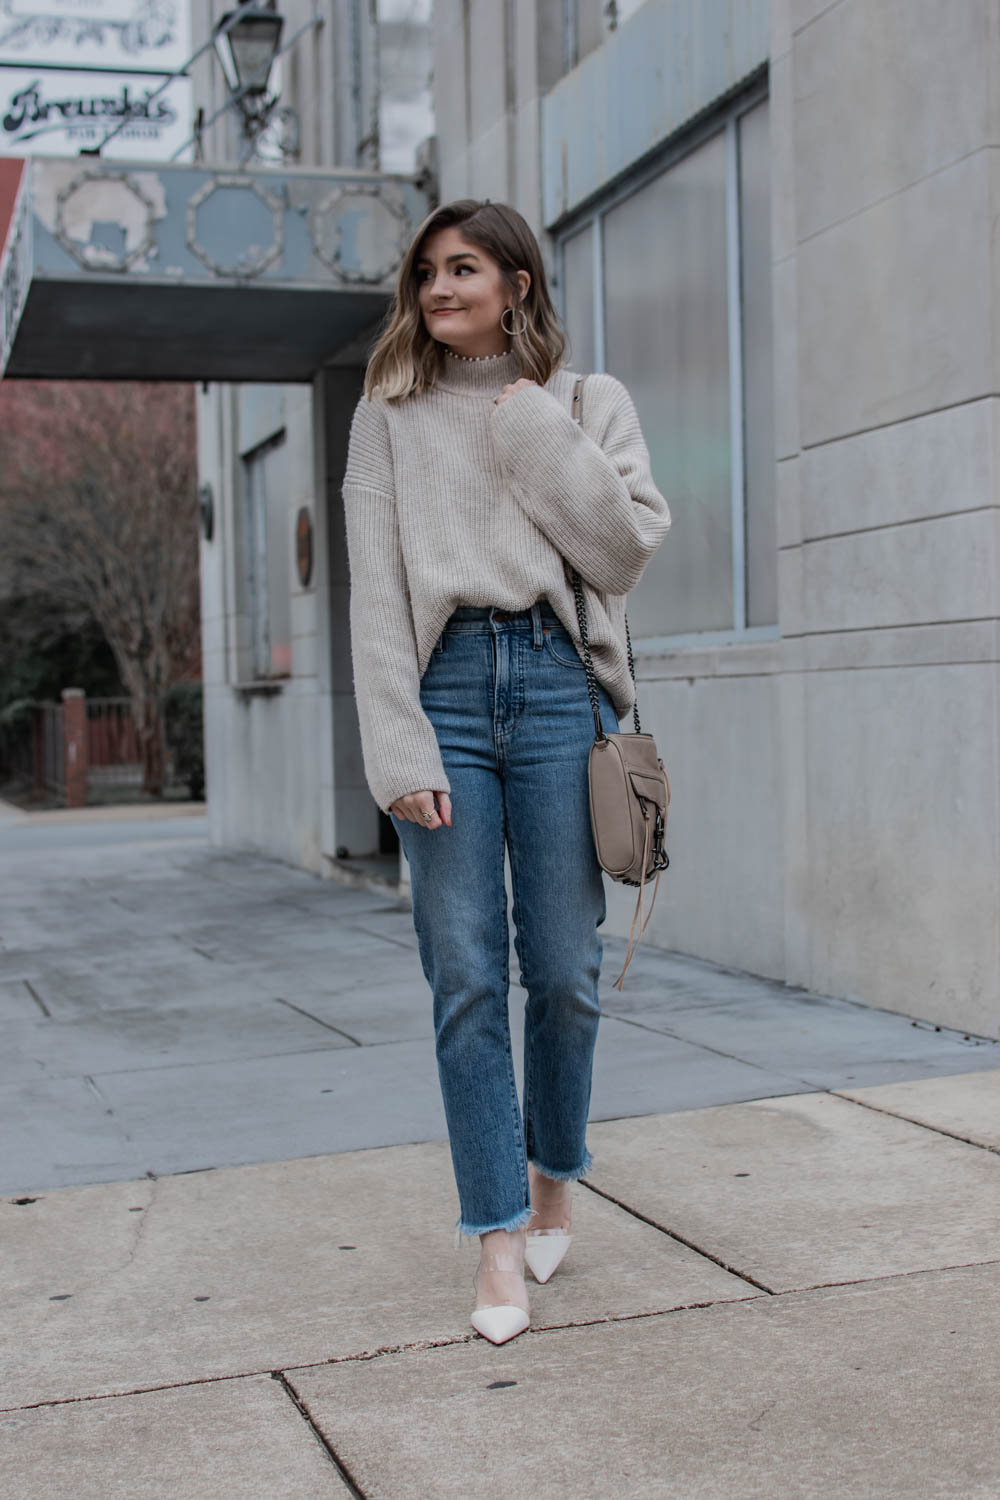 Valentines Outfits: Why I'm Shopping My Closet This Year